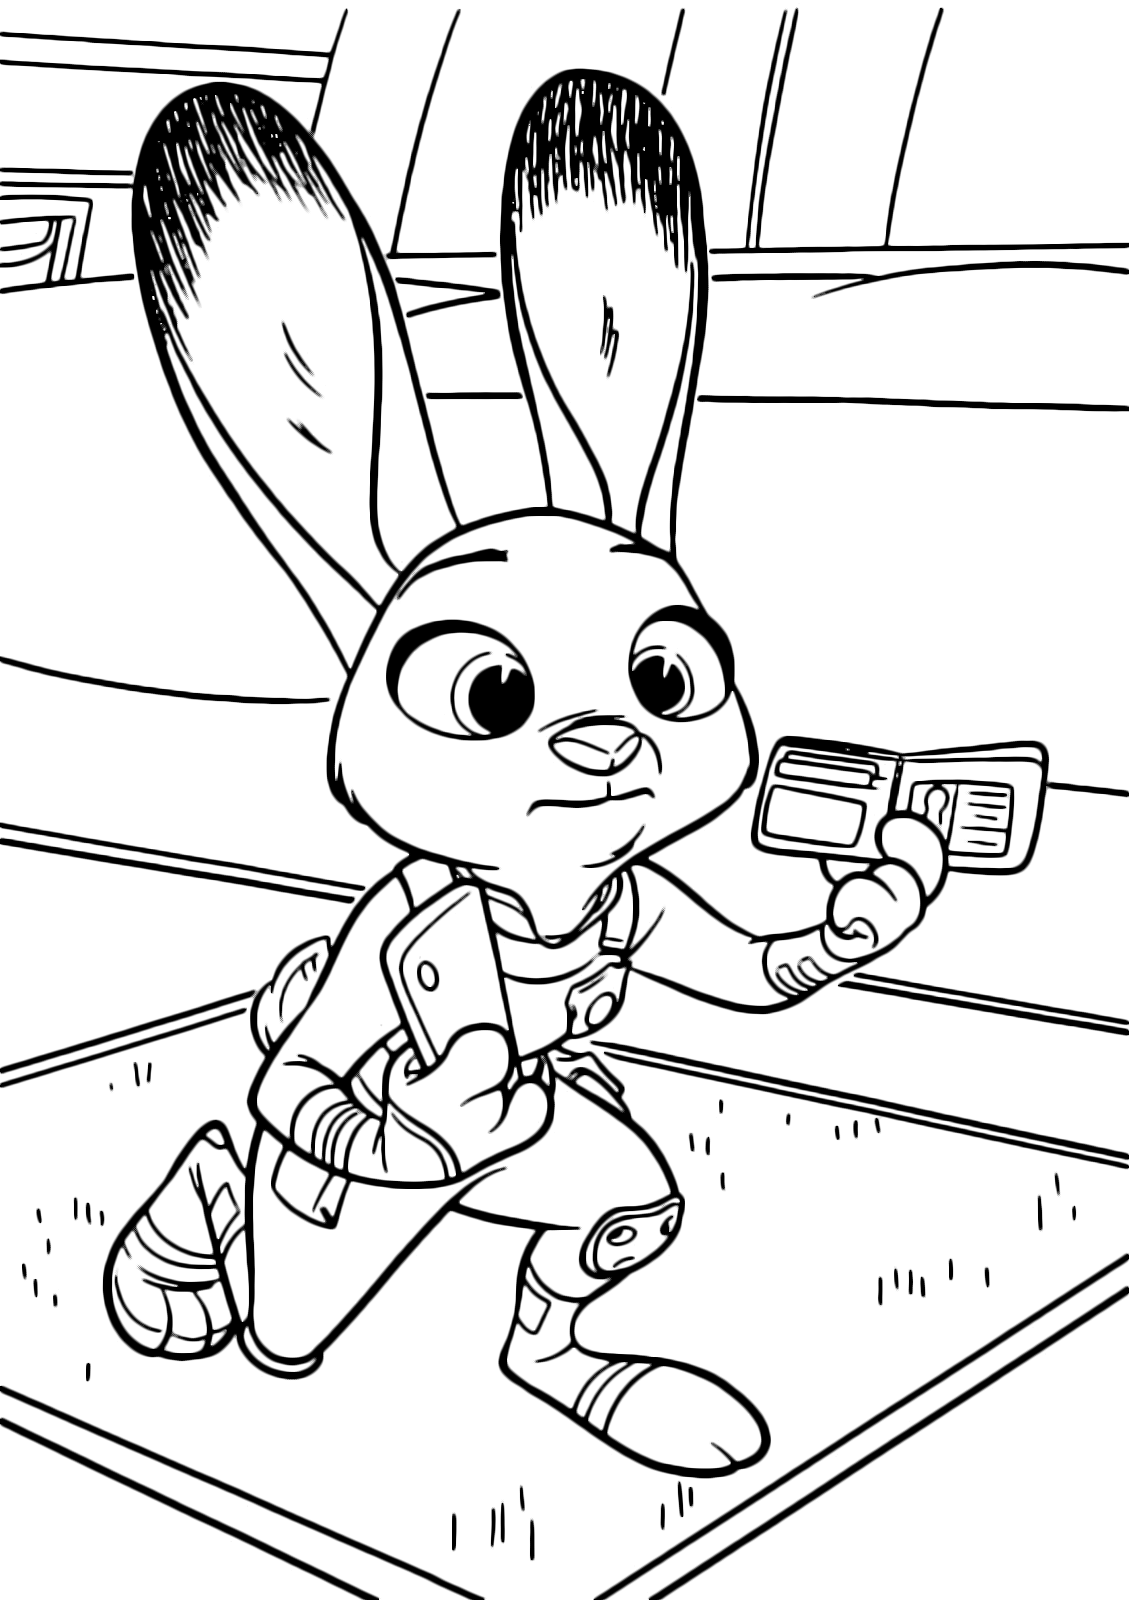 Zootopia Coloring Page The Bunny Judy Hopps Runs With A Document In Hand